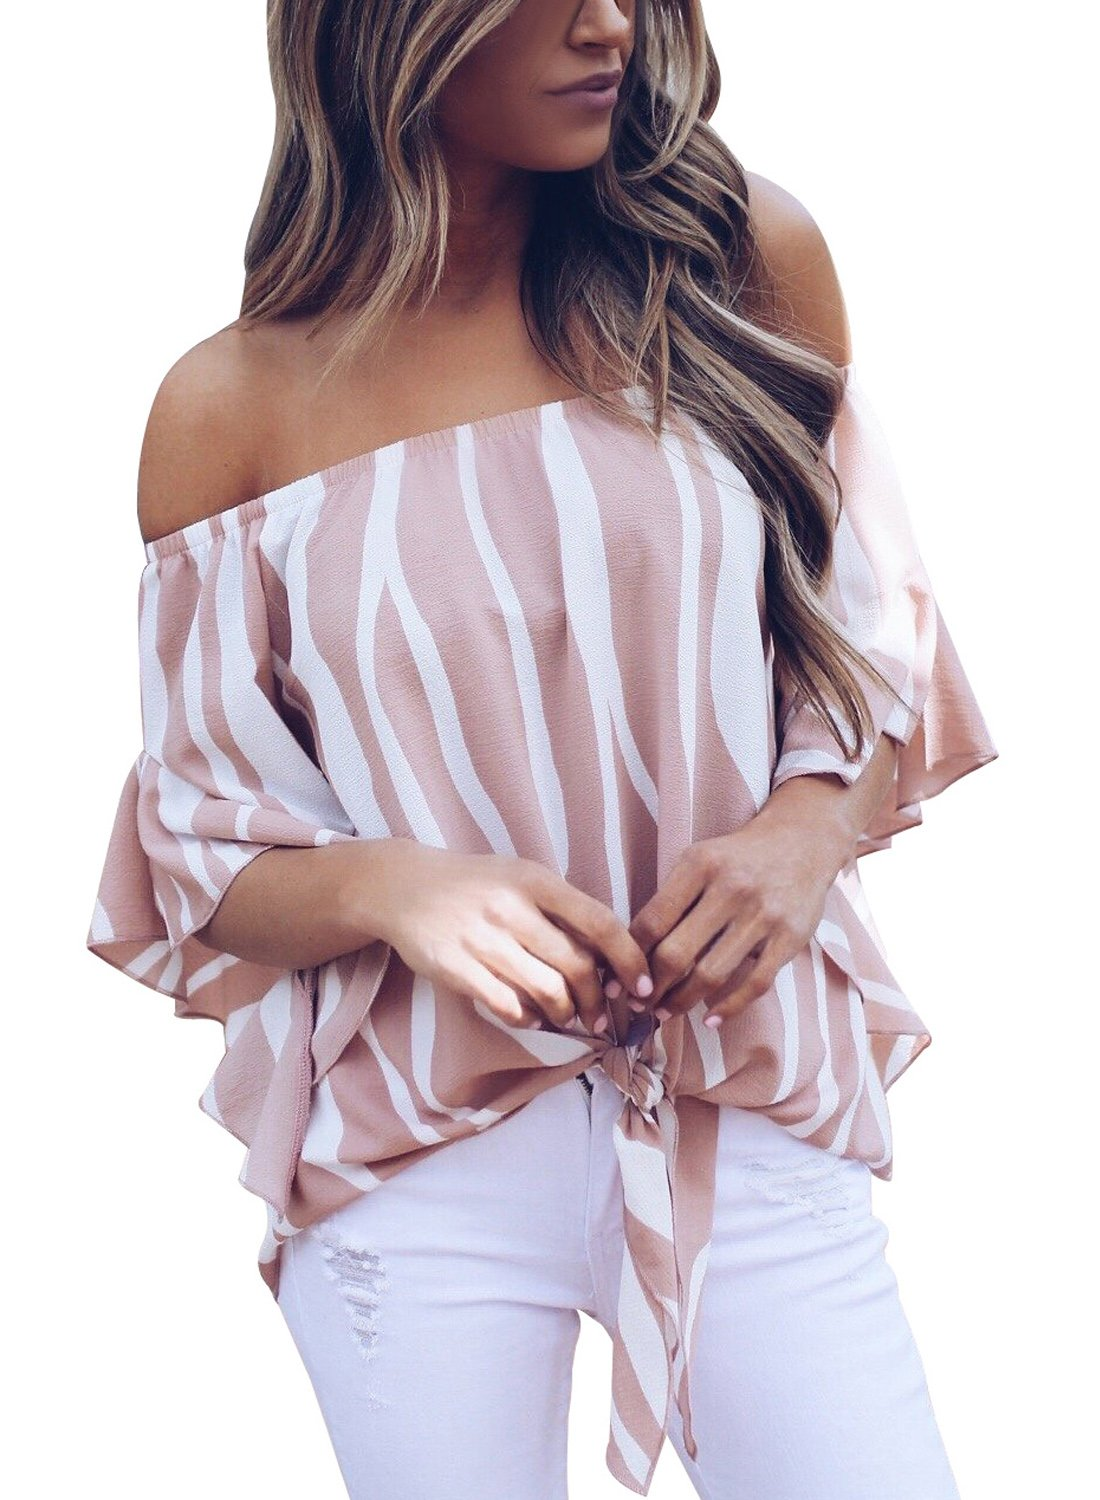 FARYSAYS Women's Striped 3/4 Bell Sleeve Off The Shoulder Front Tie Knot T Shirt Tops Blouse Pink Medium